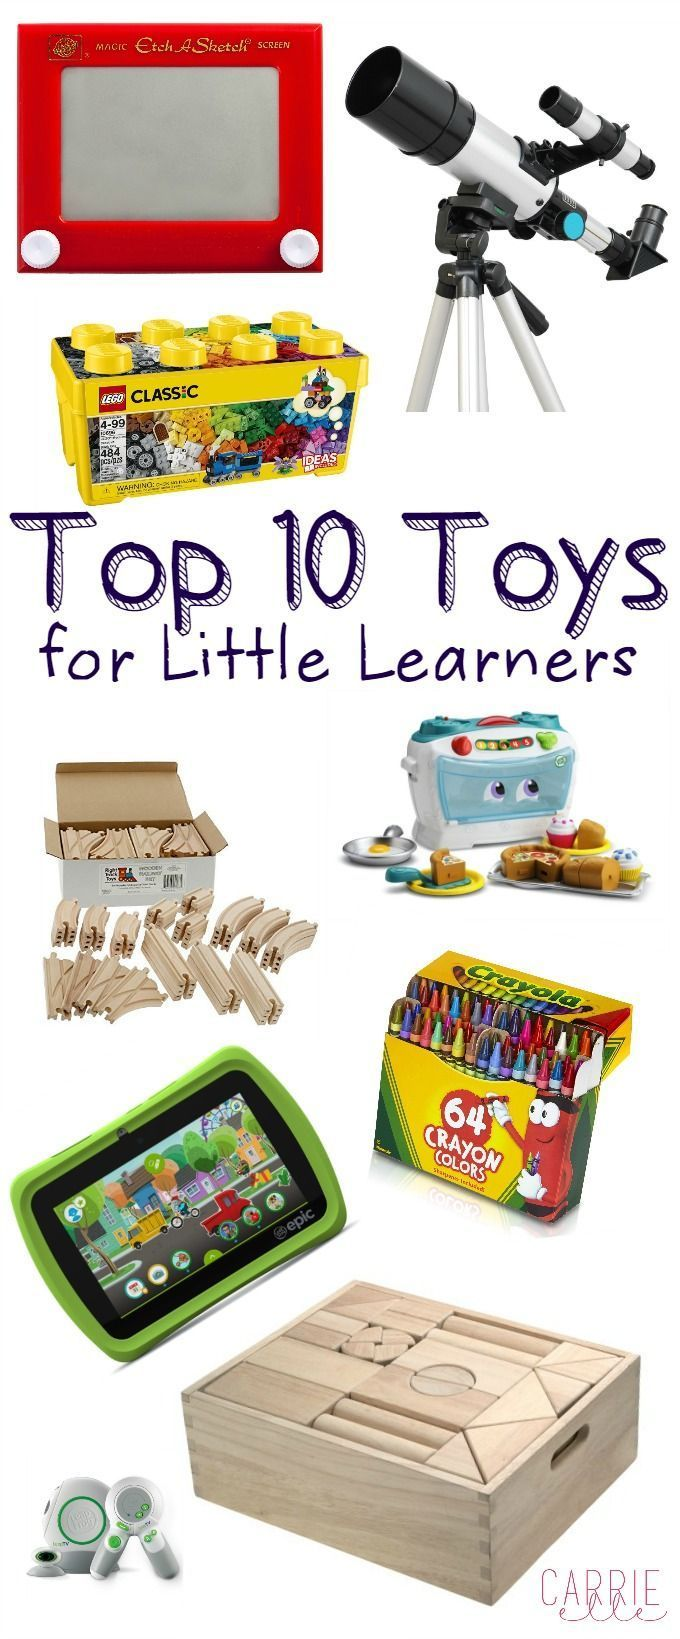 Top 10 Toys for Little Learners